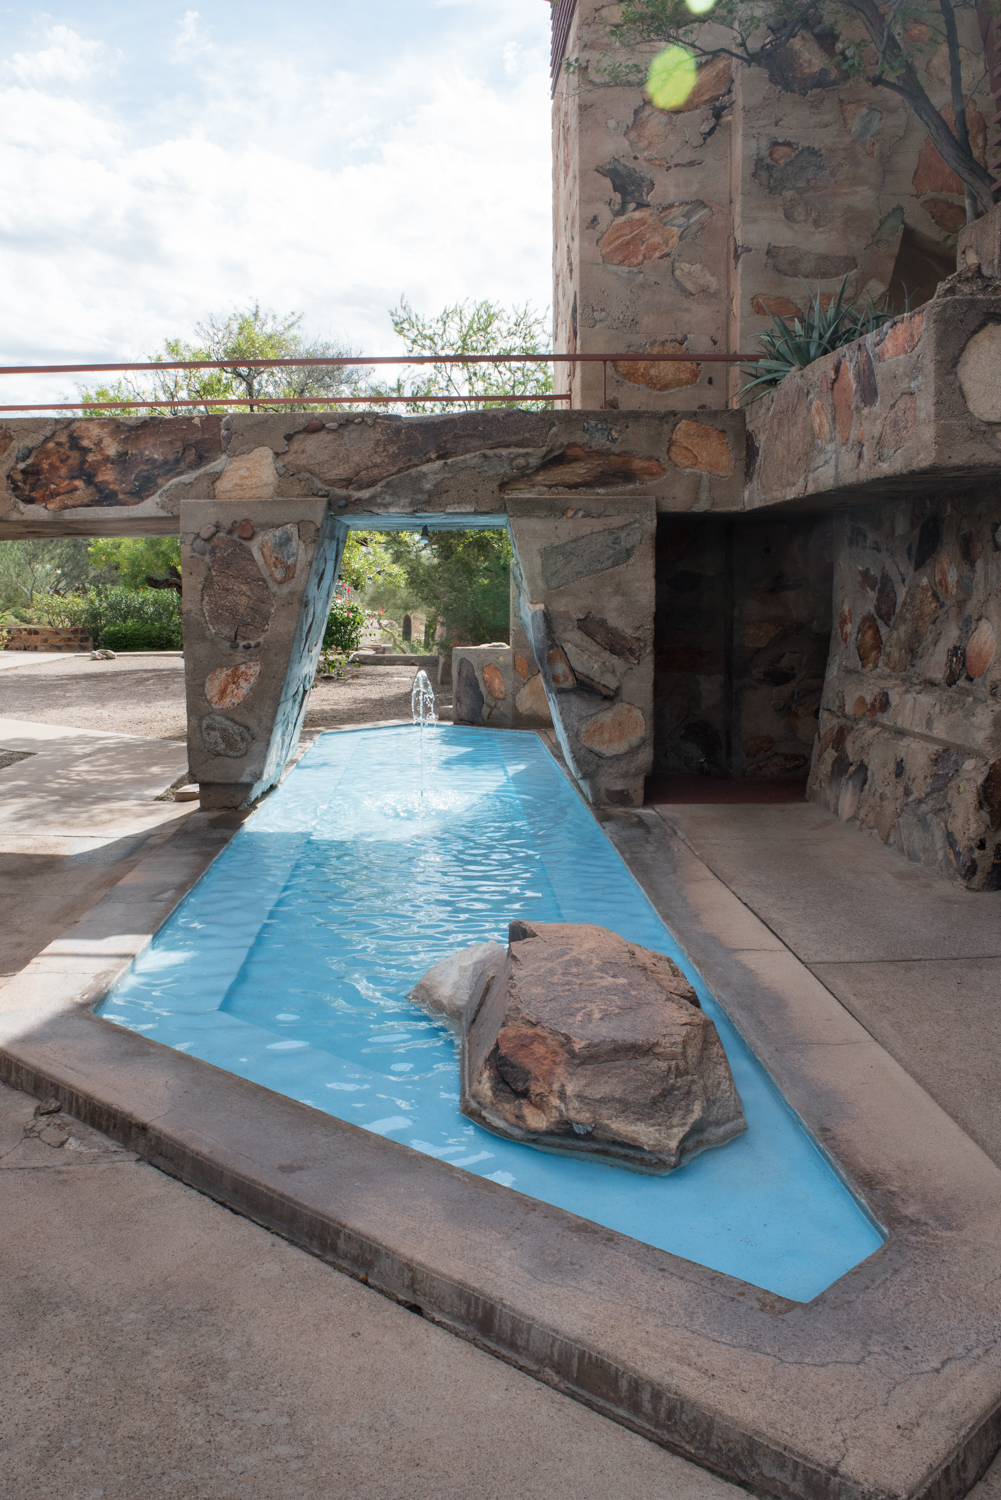 Look closely at the boulder in this water feature, and you'll see authentic petroglyphs, an inspiration to Wright's designs.